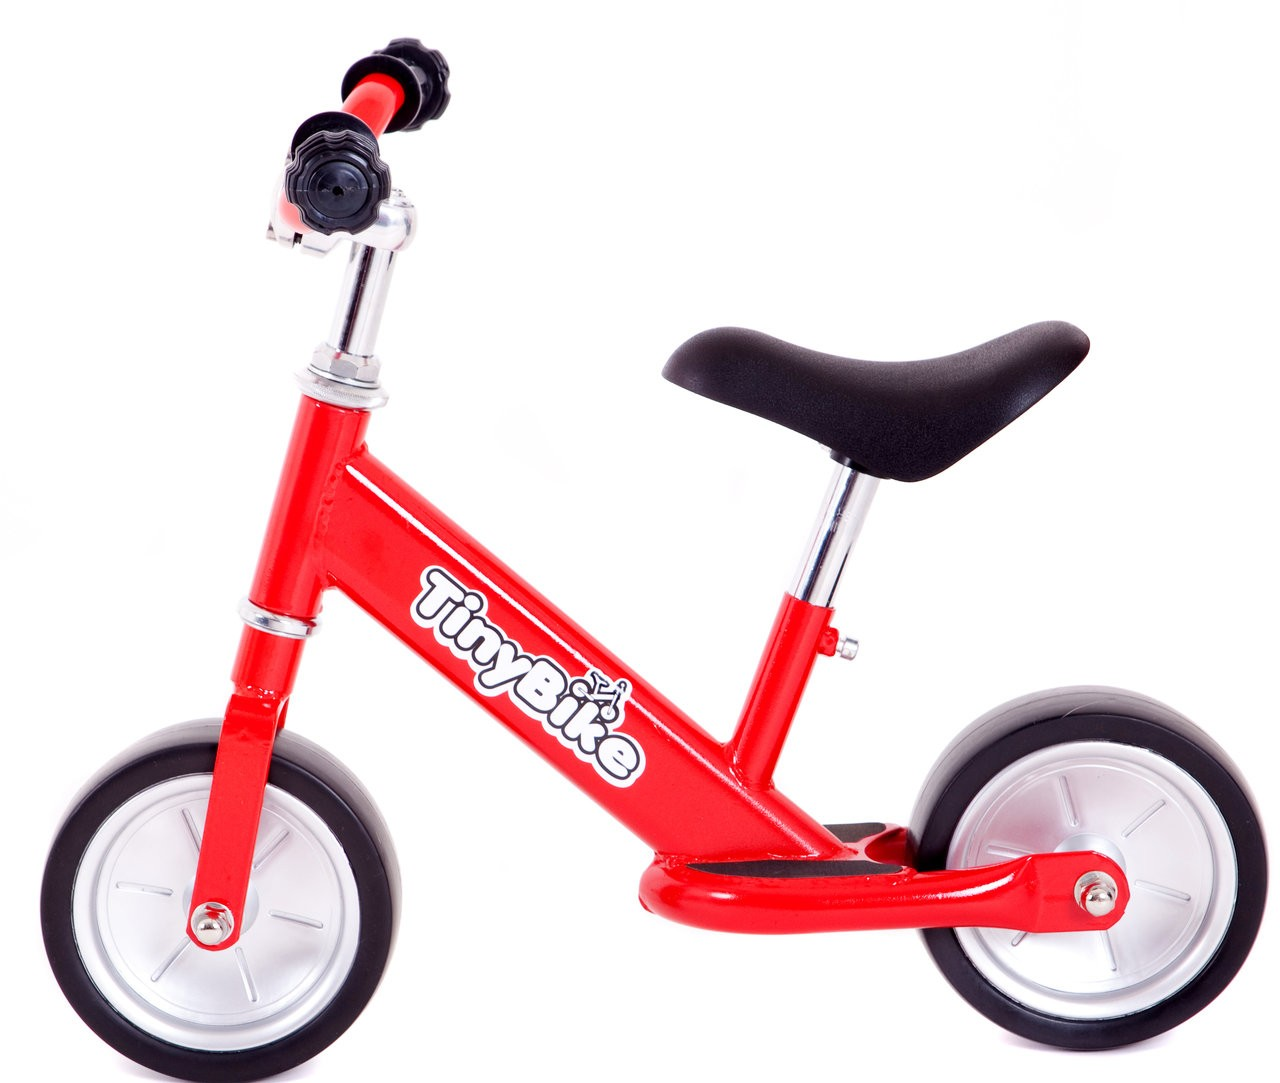 Tiny Bike Balance Bike For Children Aged 2 4 In Red